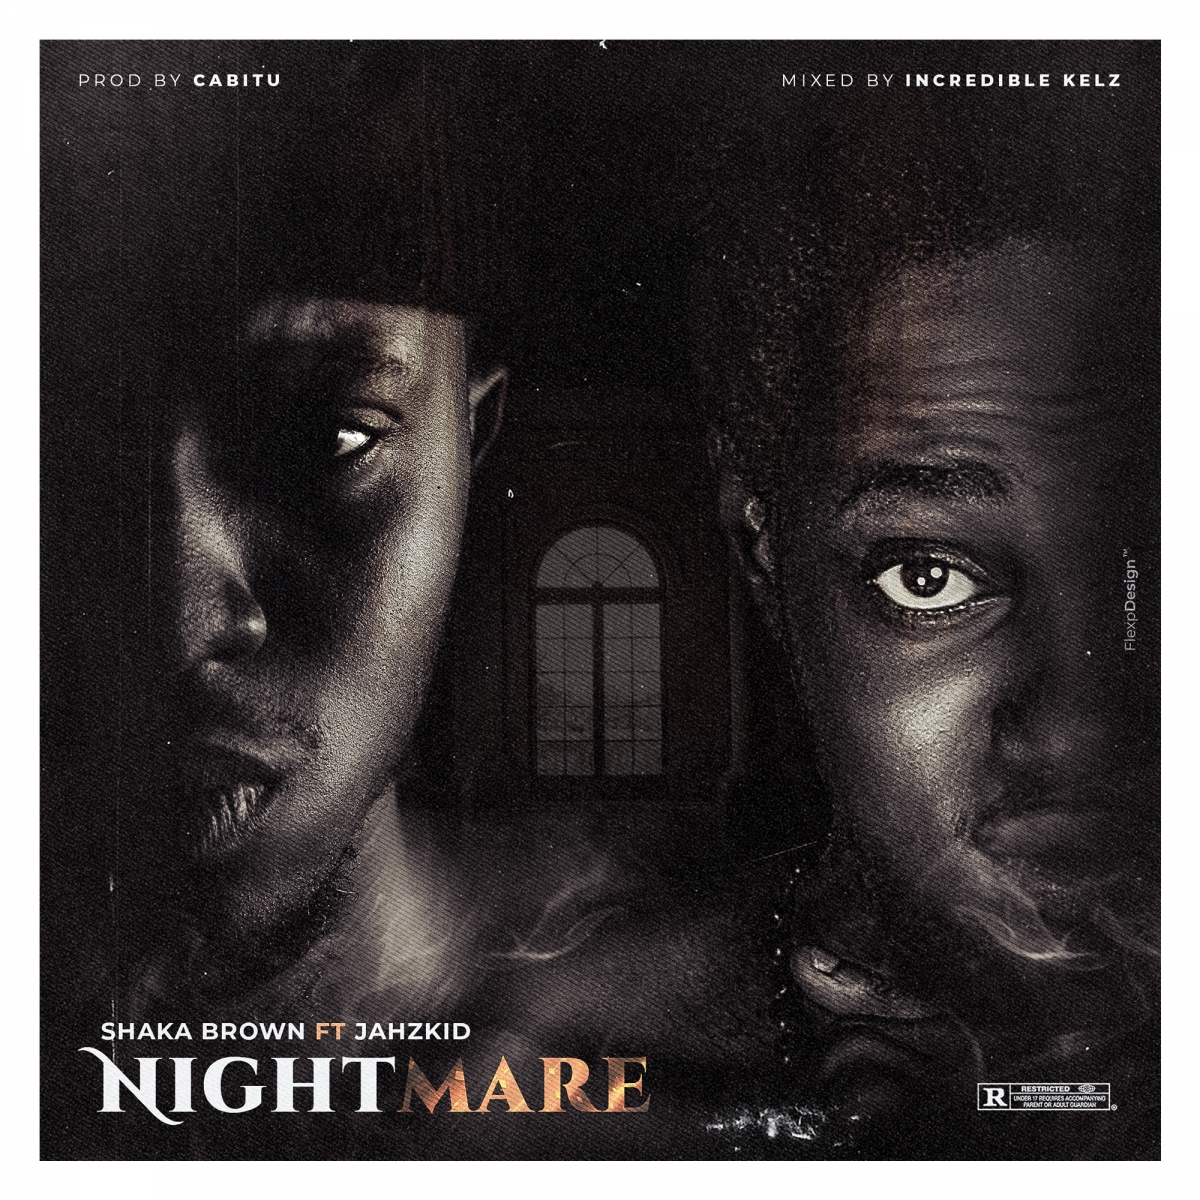 Nightmare - Shaka Brown Ft. Jahzkid